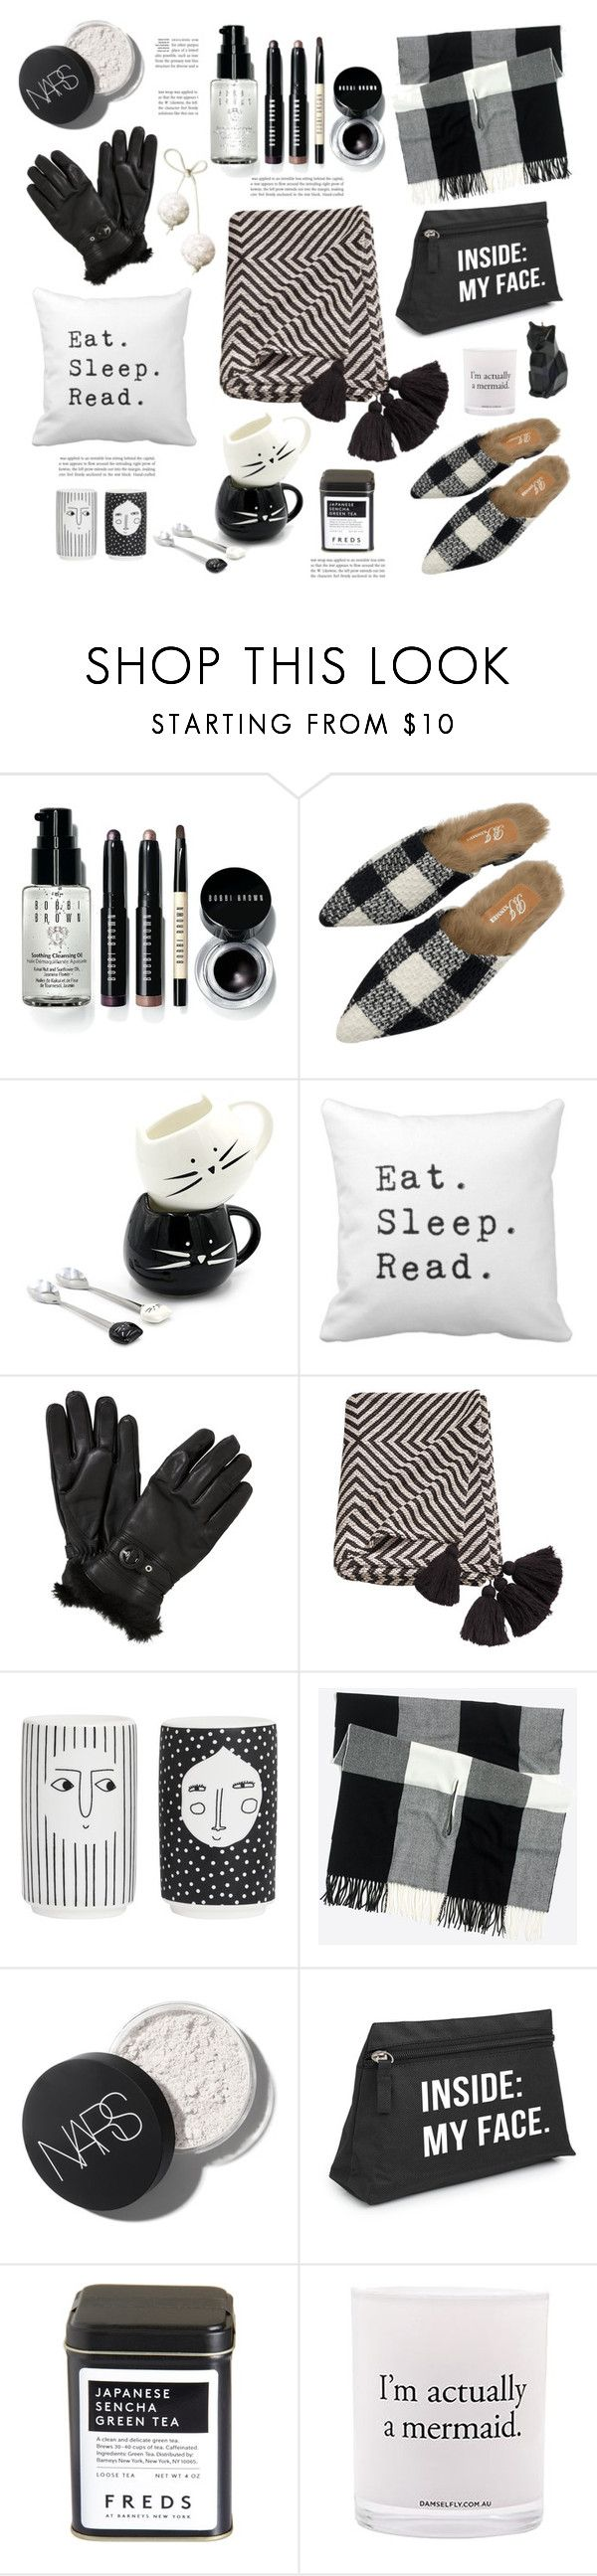 """GIFT IDEAS B&W"" by tiziana-melera ❤ liked on Polyvore featuring Bobbi Brown Cosmetics, John Lewis, FREDS at Barneys New York, Damselfly Candles and PyroPet"